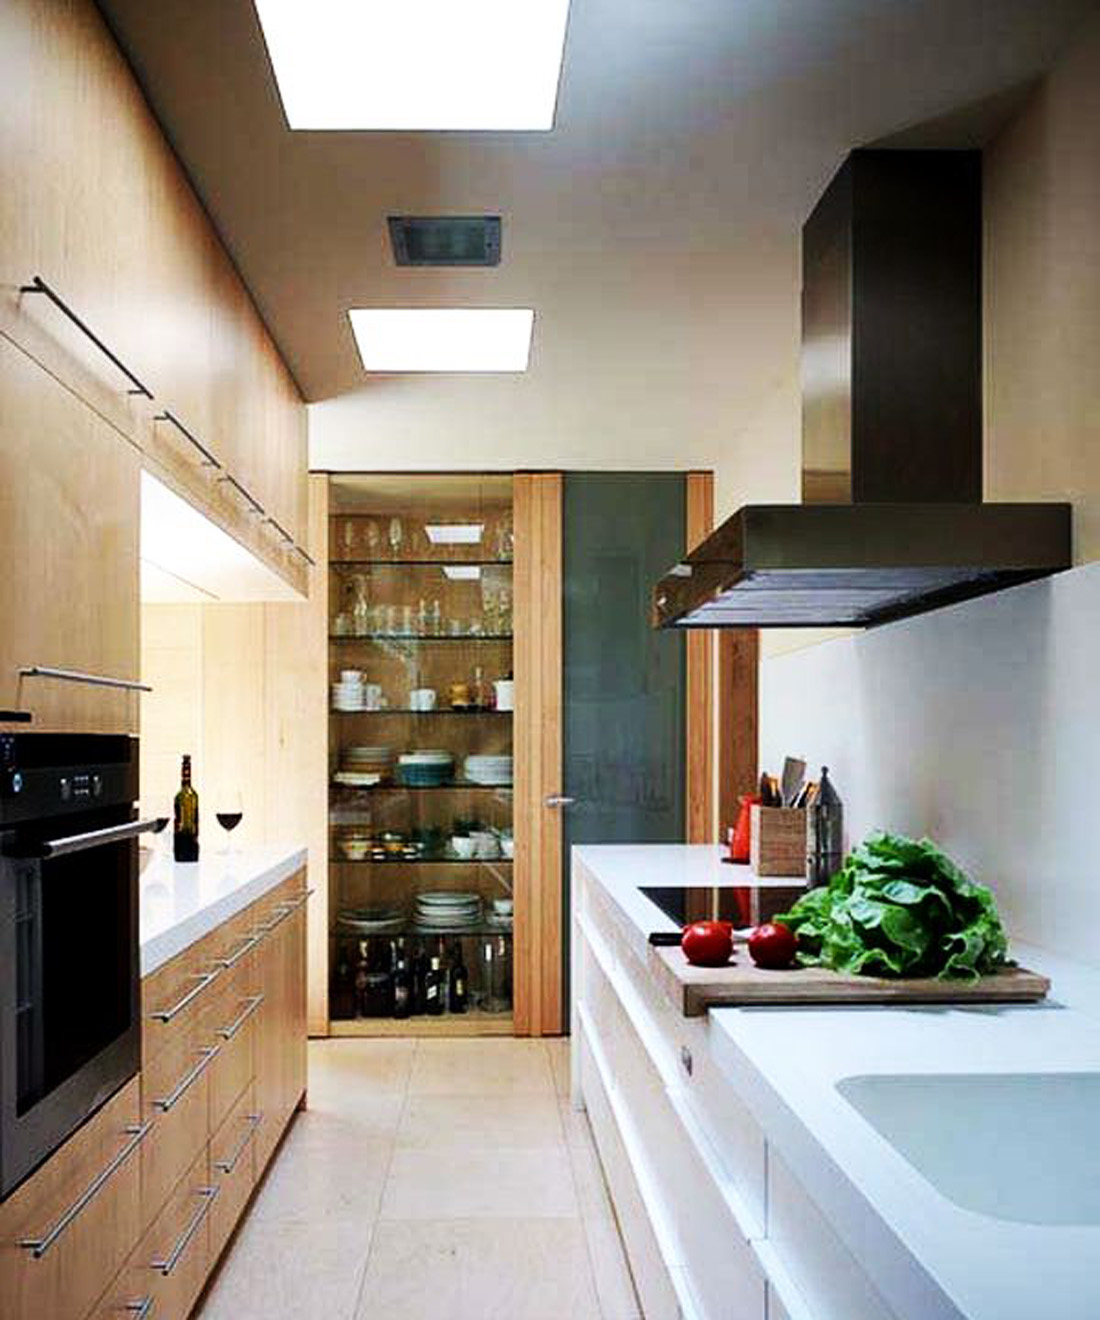 New Home Designs Latest Modern Home Kitchen Cabinet: 25 Modern Small Kitchen Design Ideas